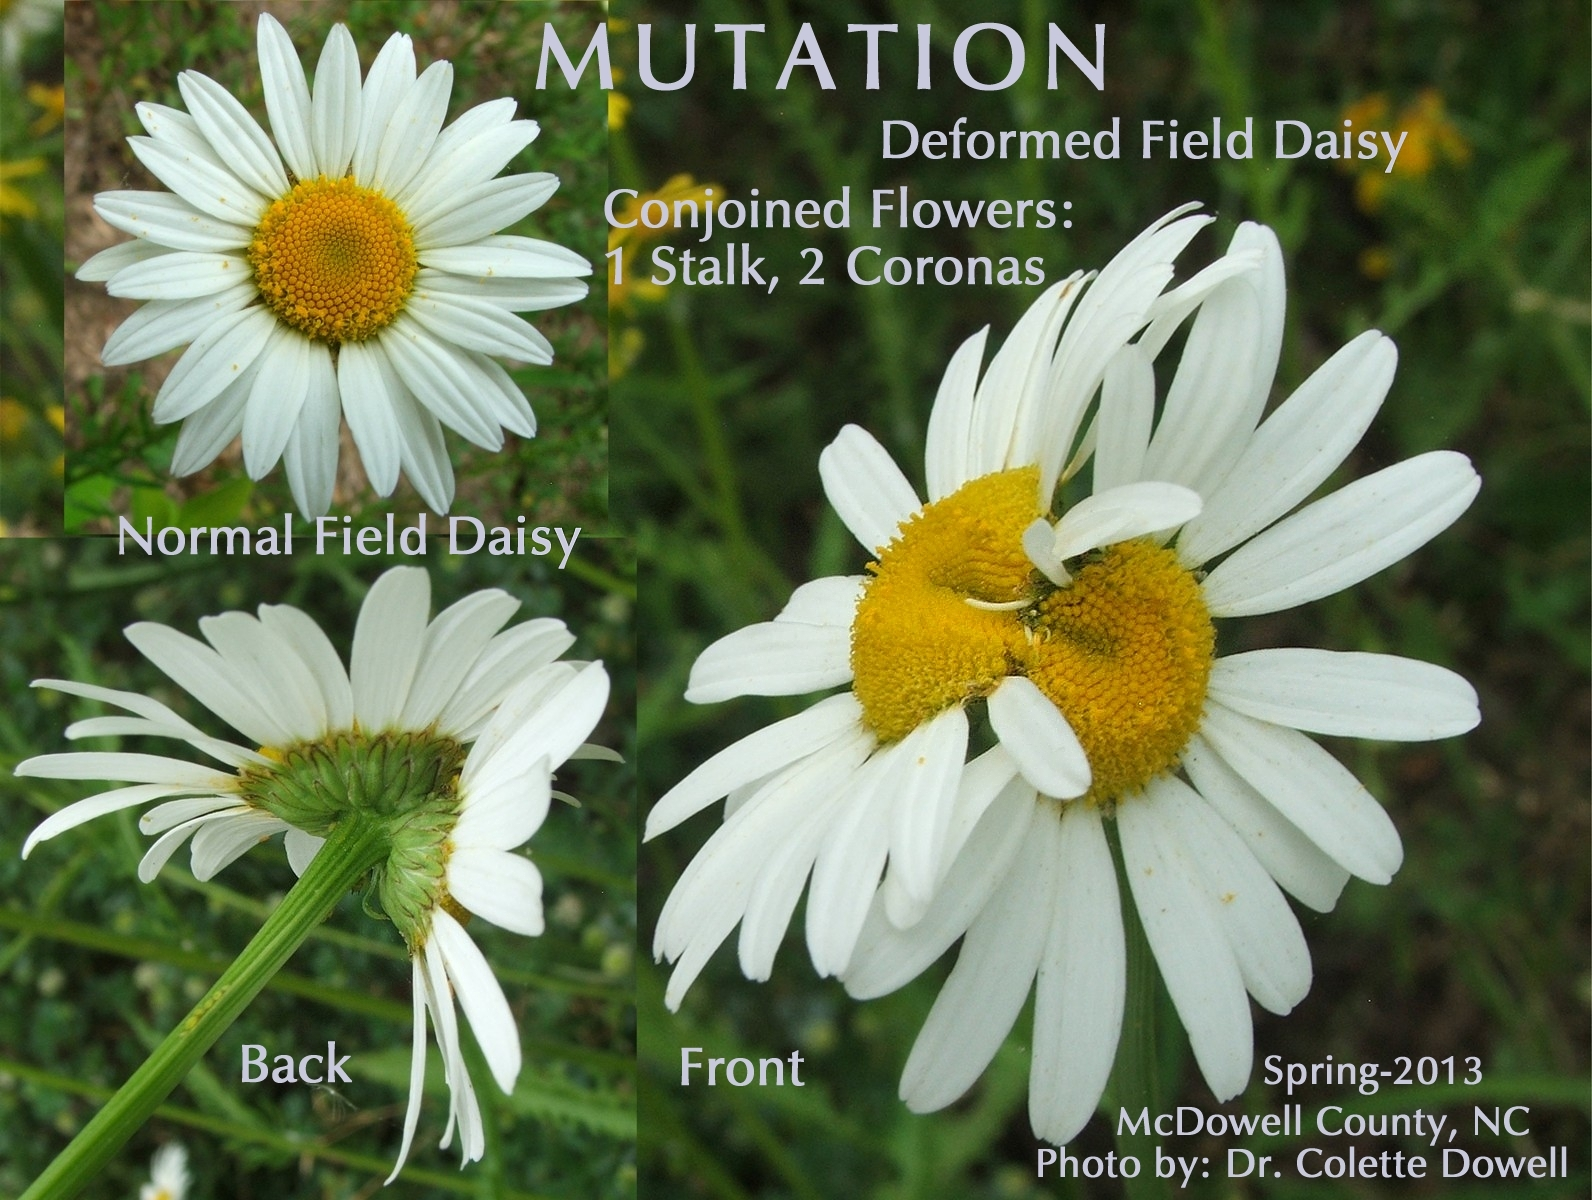 Mutated Flowers Daisy Twinning Parasites possible radiation diagram of mutation of flowers one normal